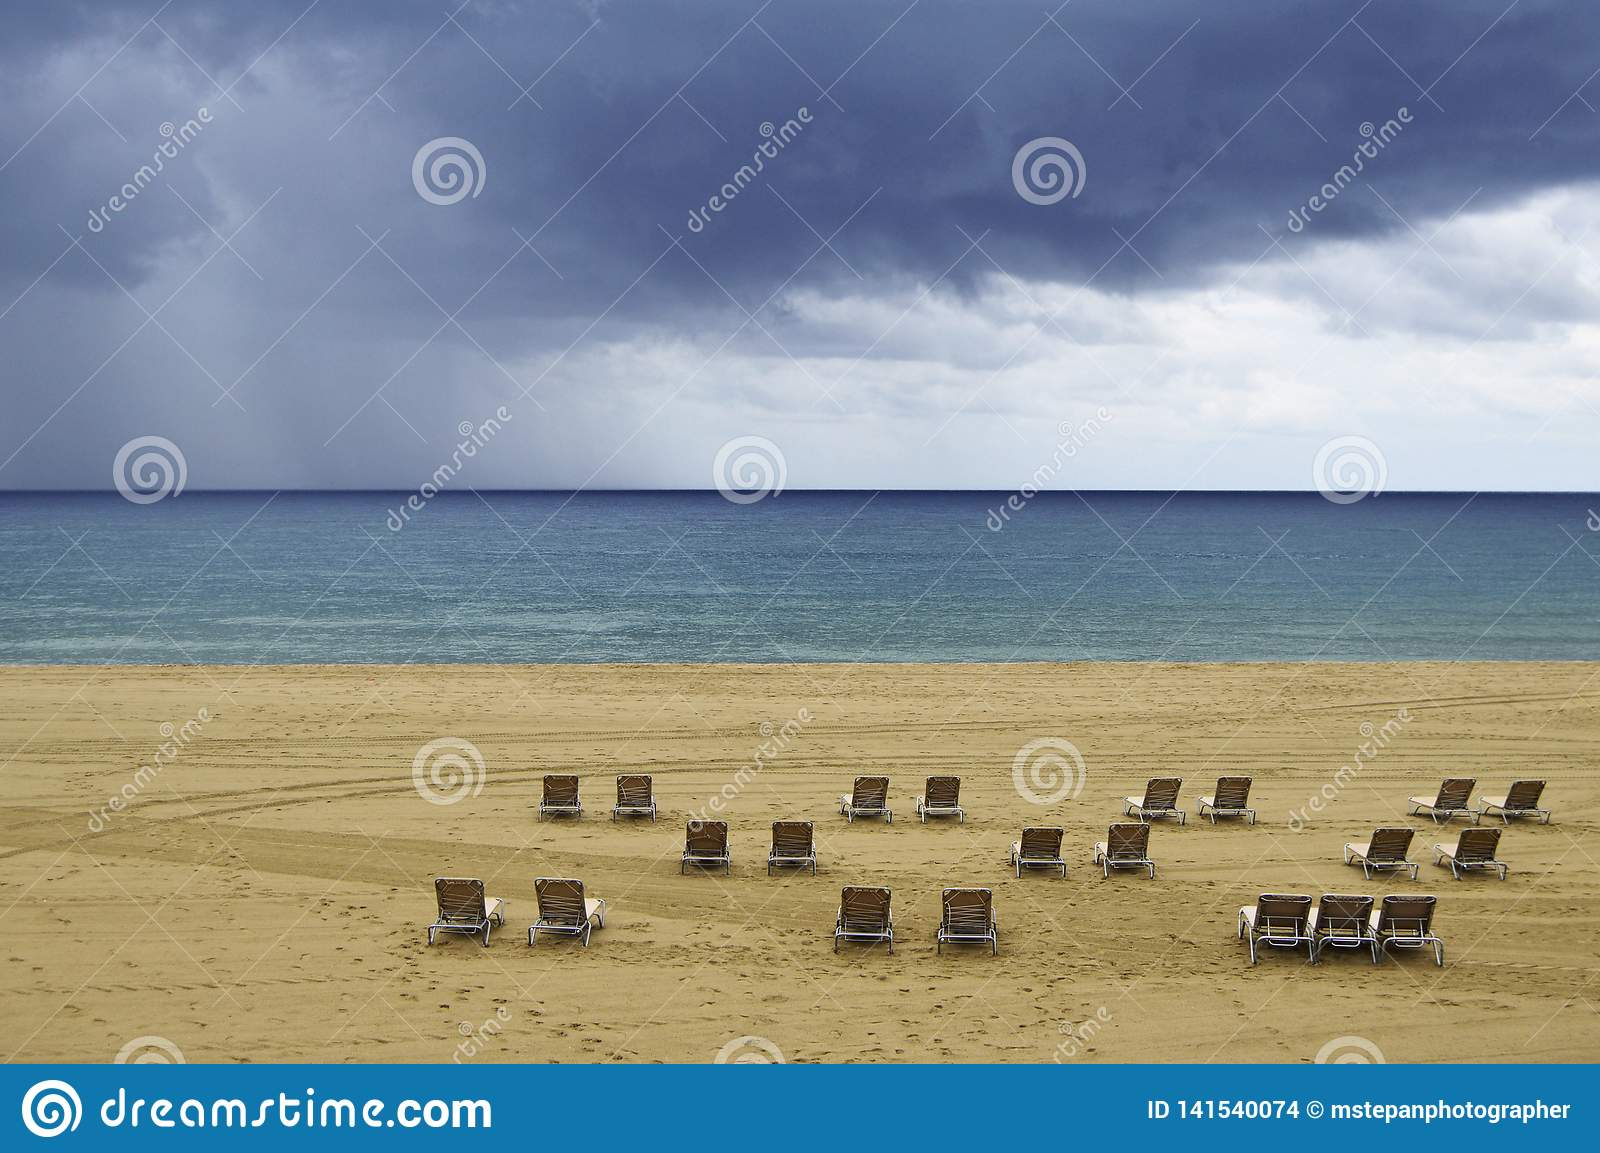 Morning storm clouds over the sea Barcelona Spain